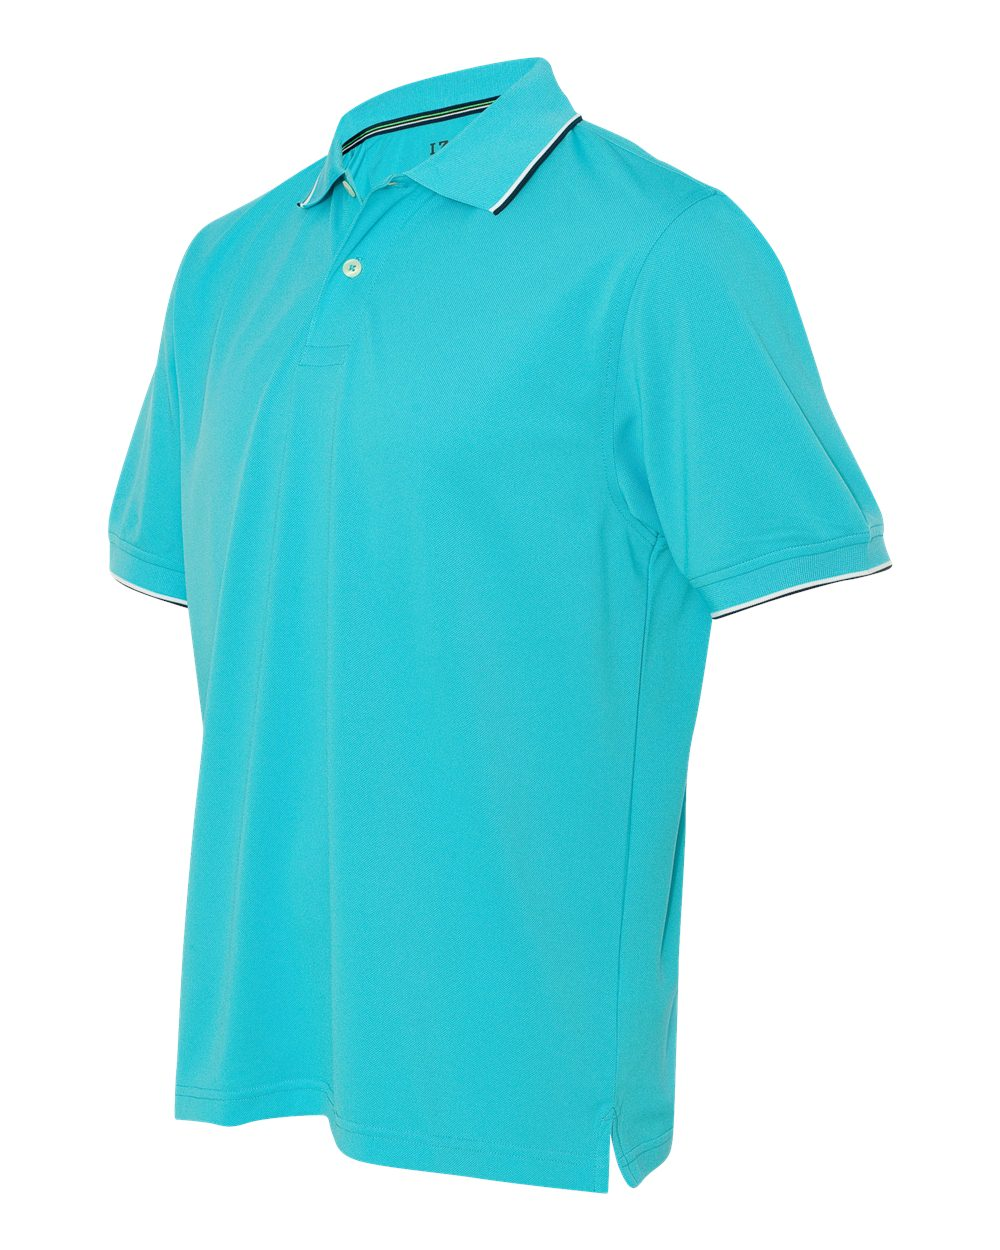 IZOD 13Z0116 - Tipped Performance Pique Sport Shirt